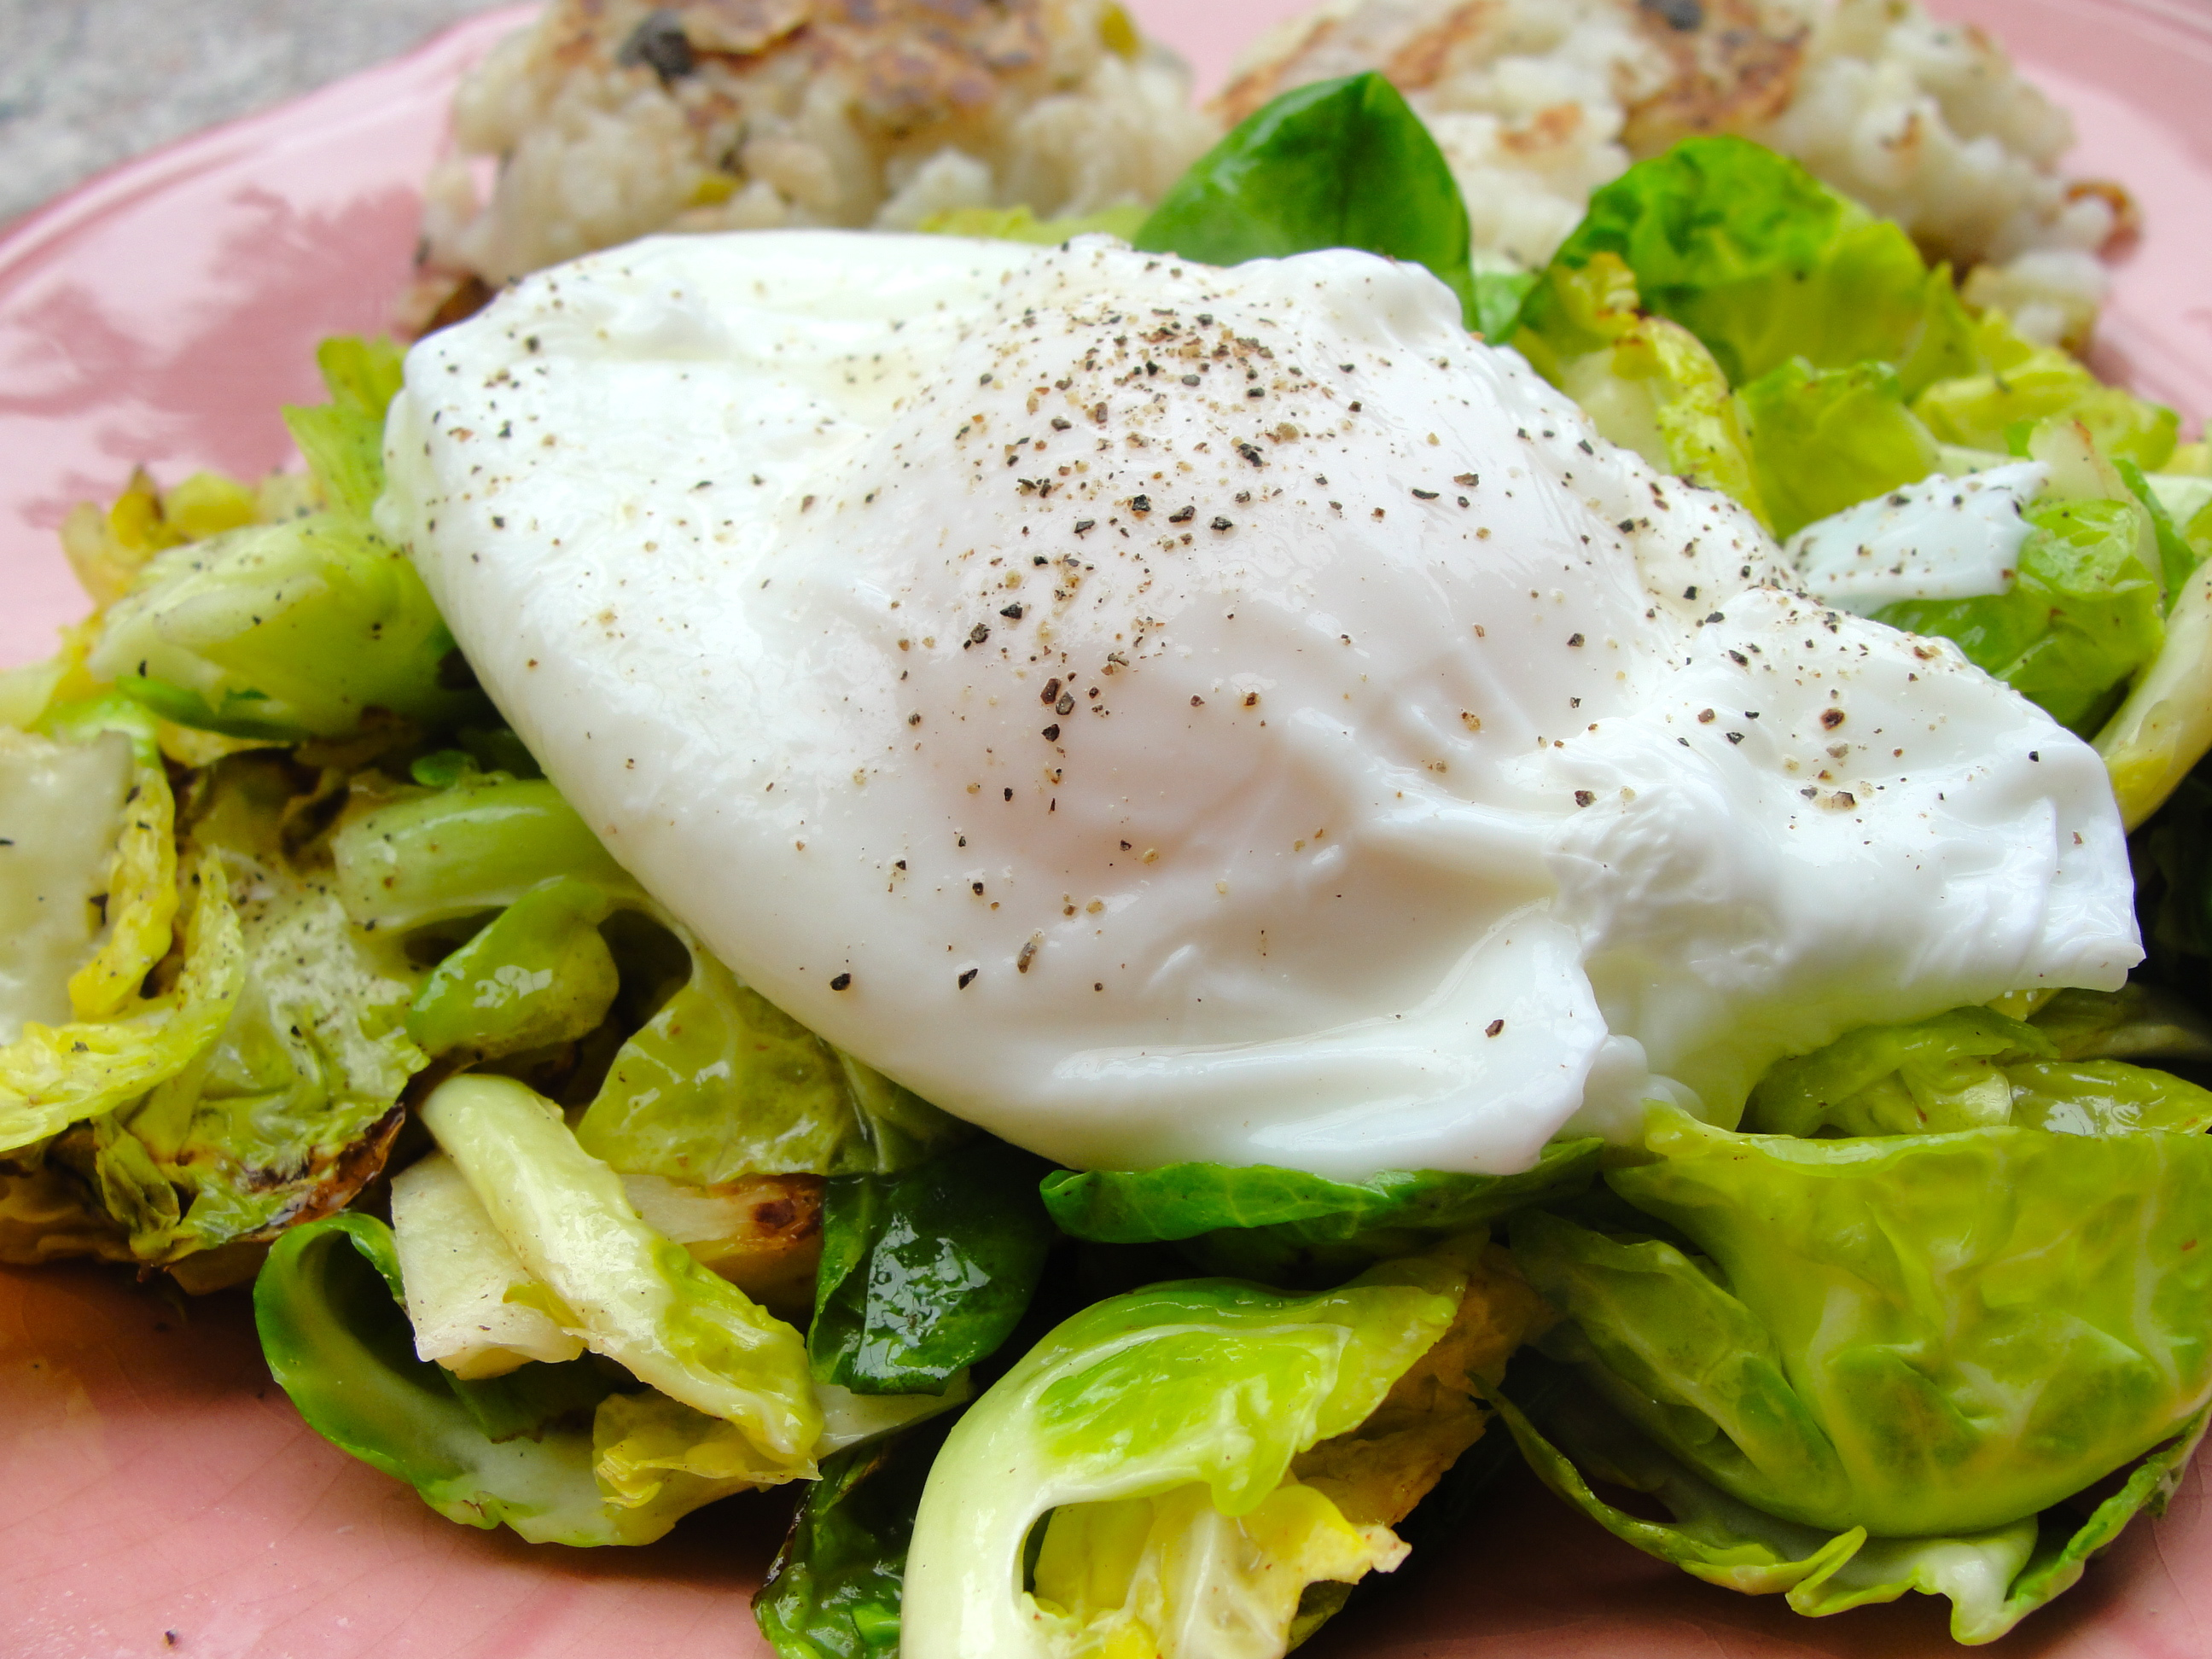 Low Sodium Brussel Sprout Salad with Poached Egg Dressing